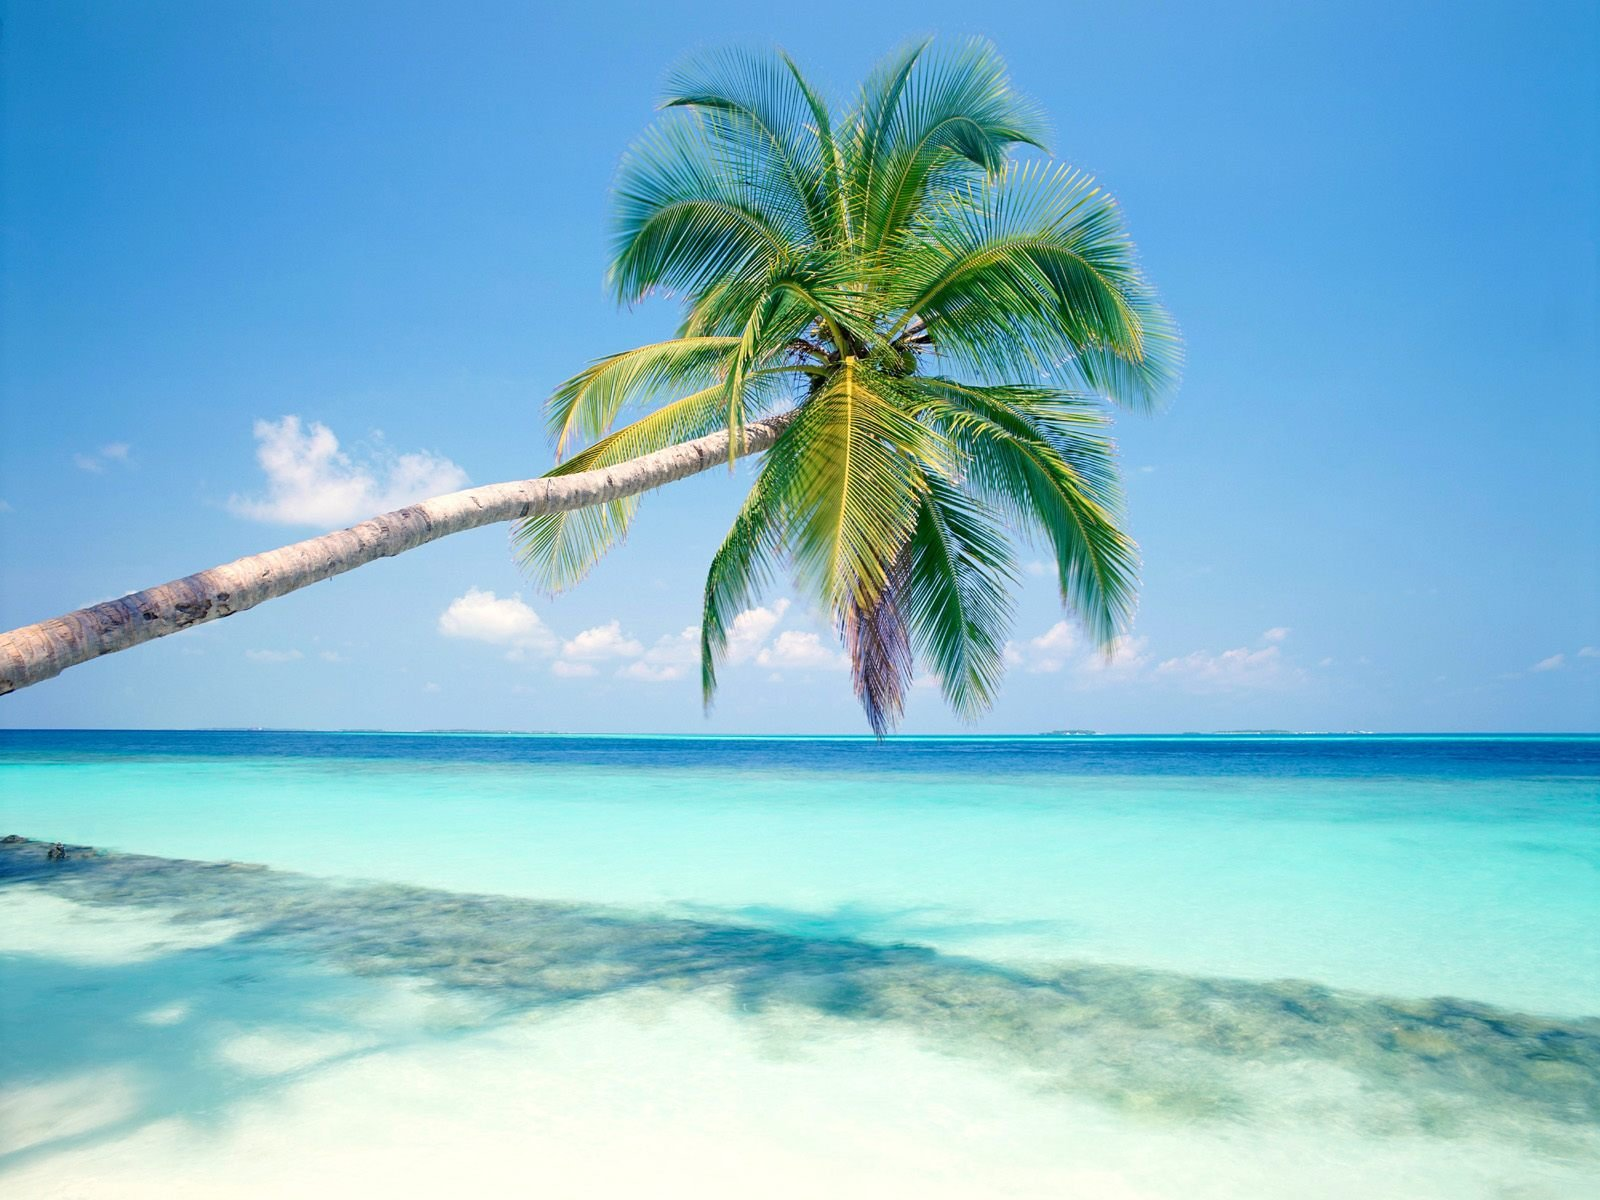 Tropical Island Wallpapers | HD Wallpapers